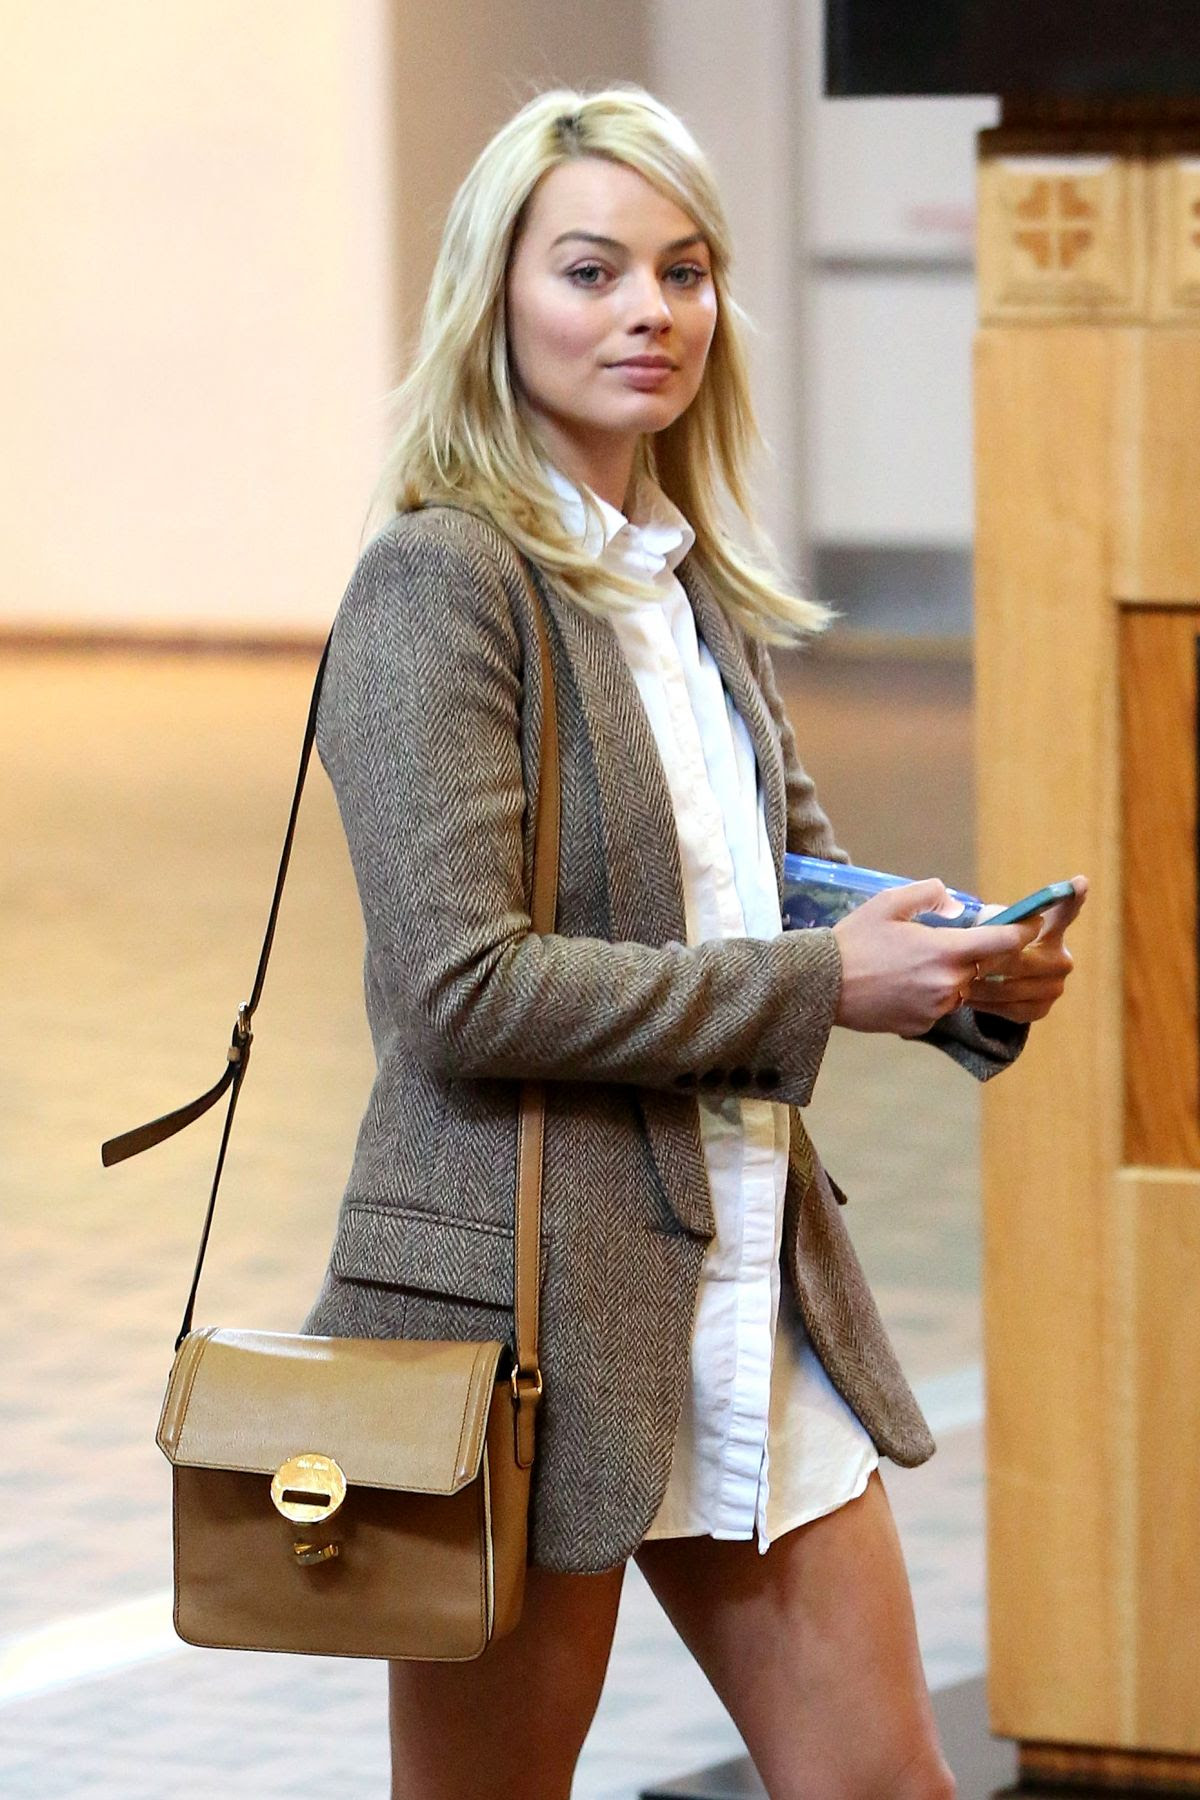 MARGOT ROBBIE Arrives at Albuquerque International Sunport